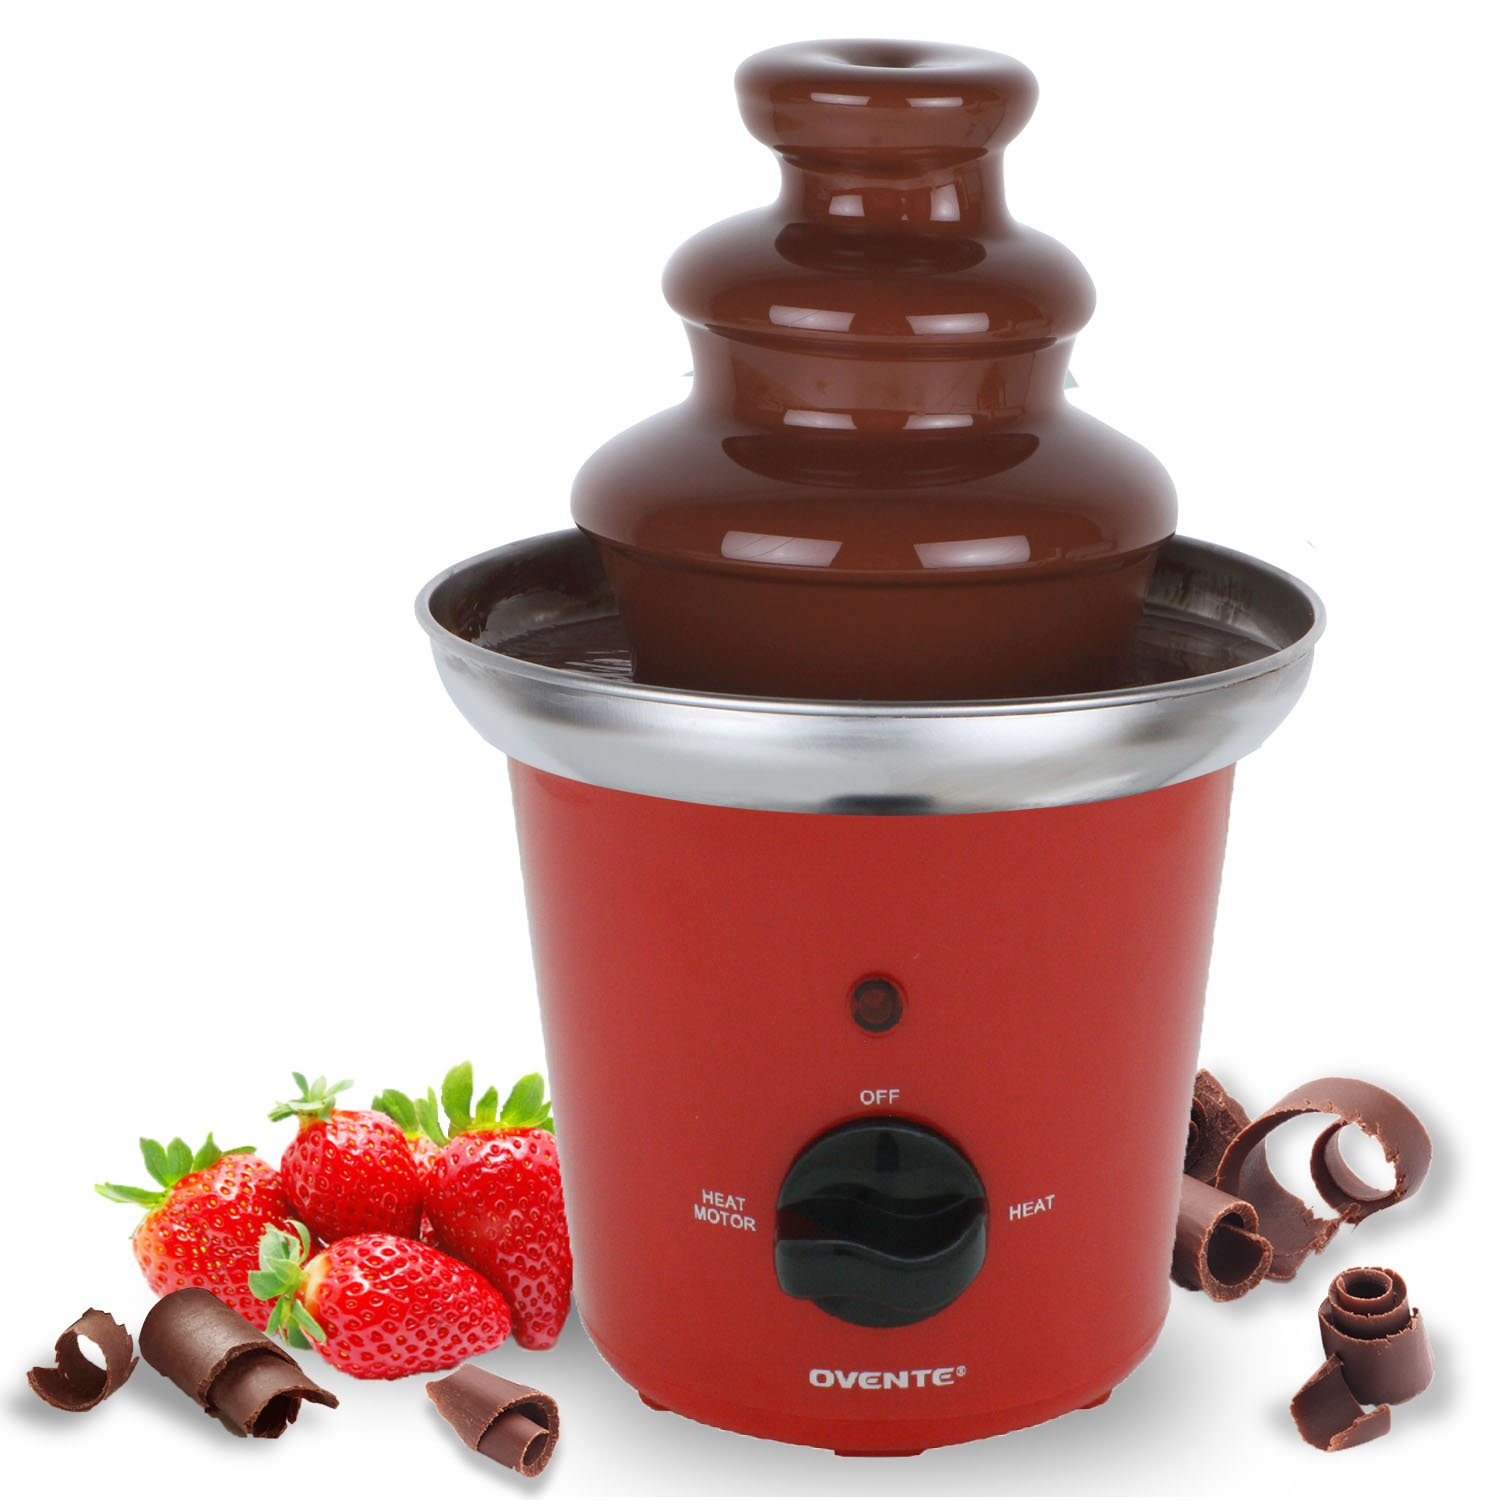 Amazon.com: Ovente 2-Tier Chocolate Fountain Stainless Steel, 9 ...